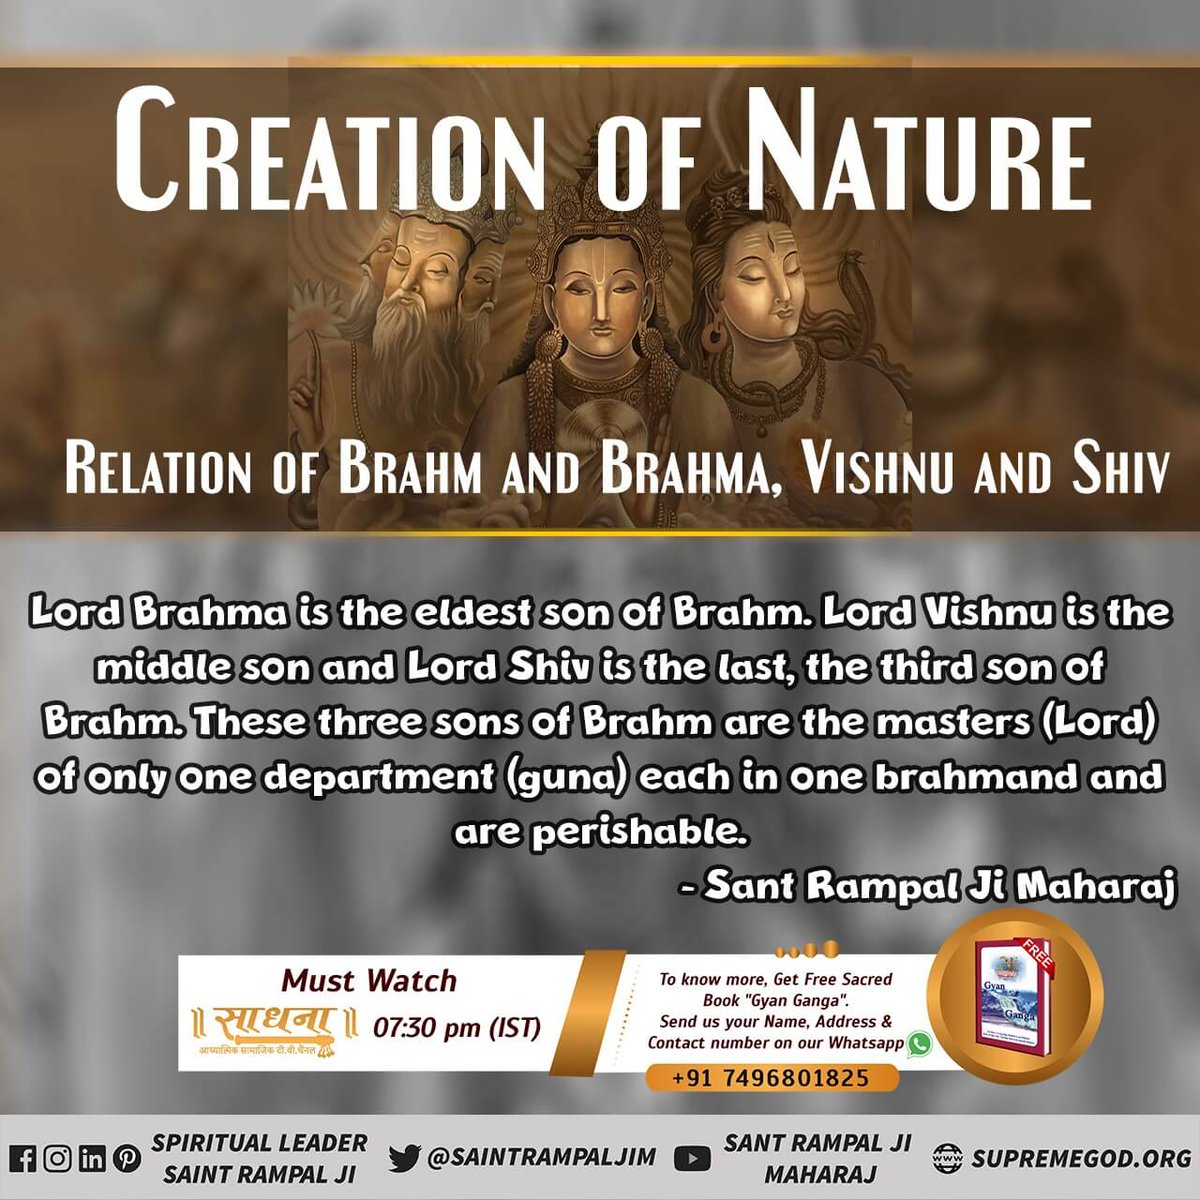 #thursdayvibes  #thursdaymorning #ThursdayMorningMood  Sant Rampal Ji Maharaj revealed the facts of birth and death of these three gods and their mother and father. These 5 are not supreme God , these are dummy gods. The supreme God is Kabir Saheb. Watch Ishwar Tv at 8:30 pm.